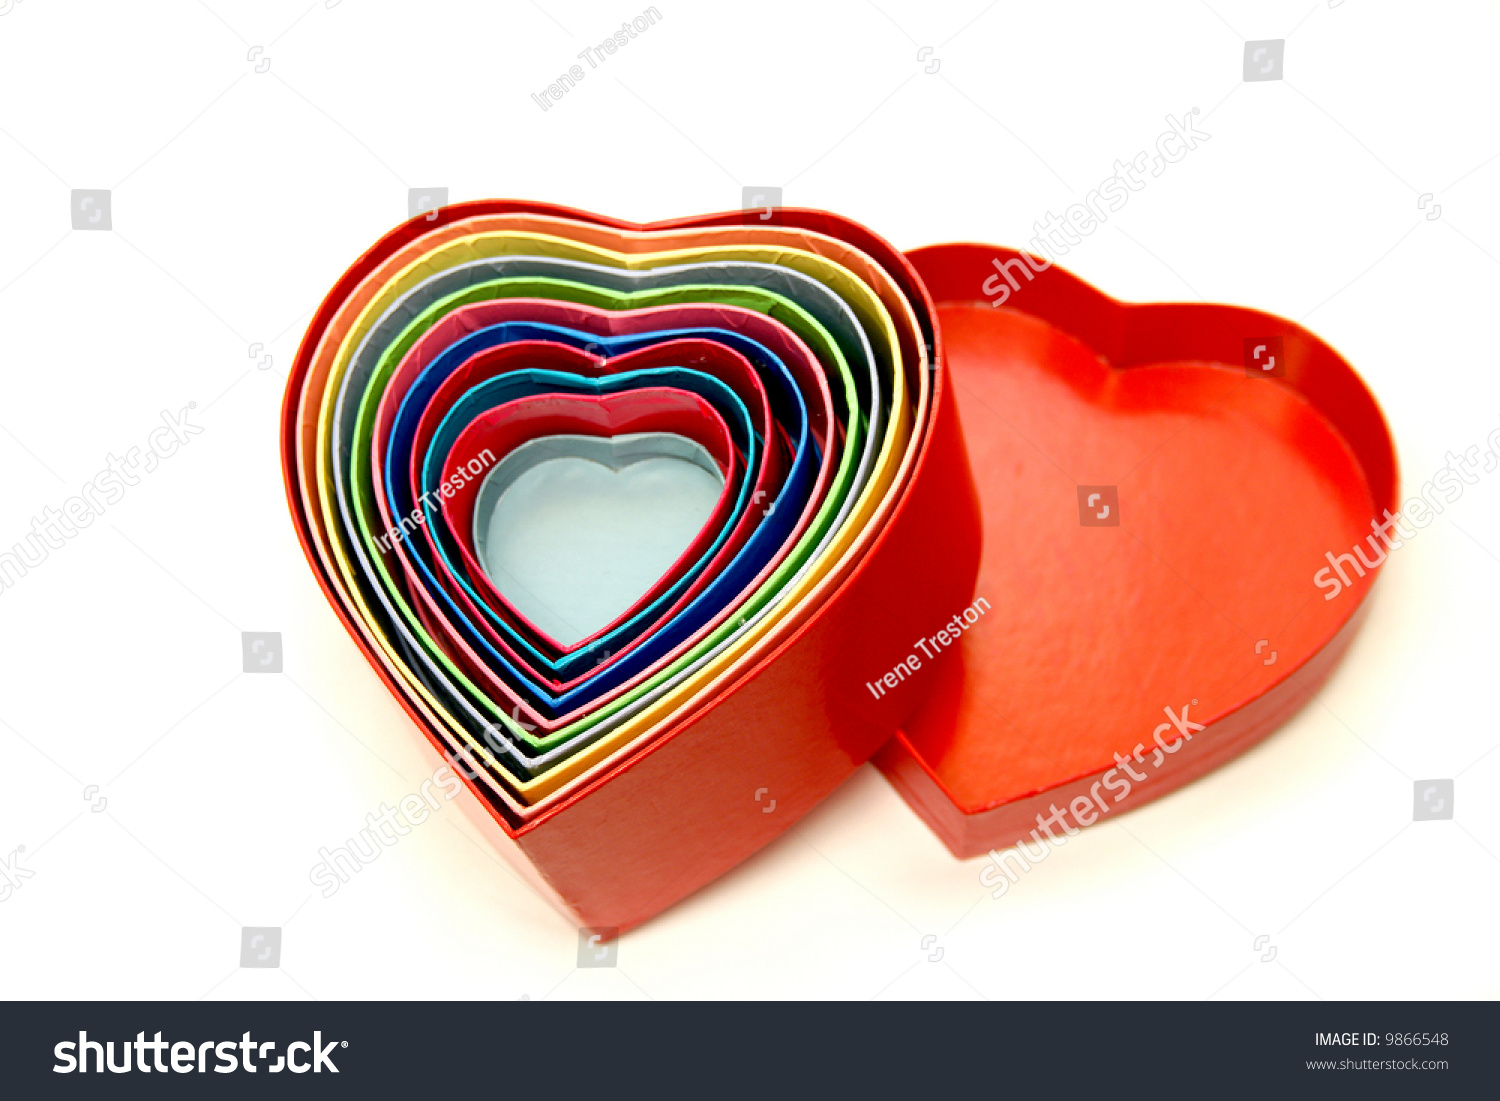 Heart shaped boxes within one another stock photo 9866548 shutterstock heart shaped boxes within one another to as a colorful symbol of love biocorpaavc Images